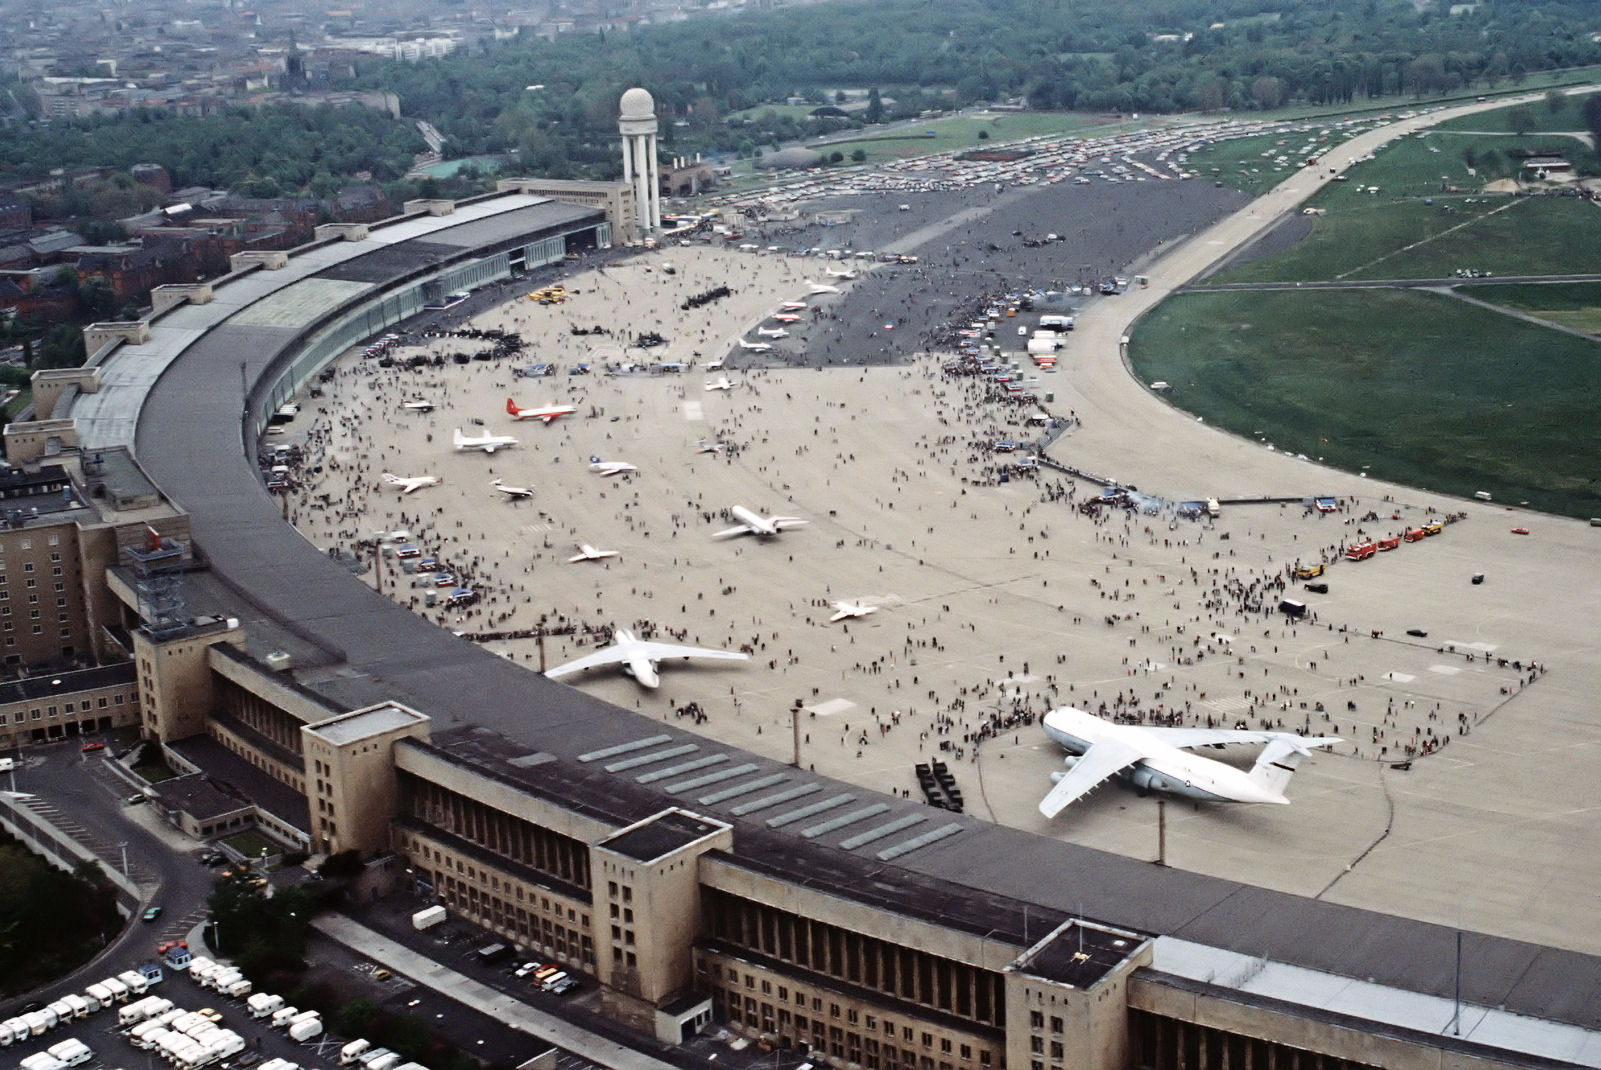 http://upload.wikimedia.org/wikipedia/commons/a/ae/FlughafenBerlinTempelhof1984.jpg